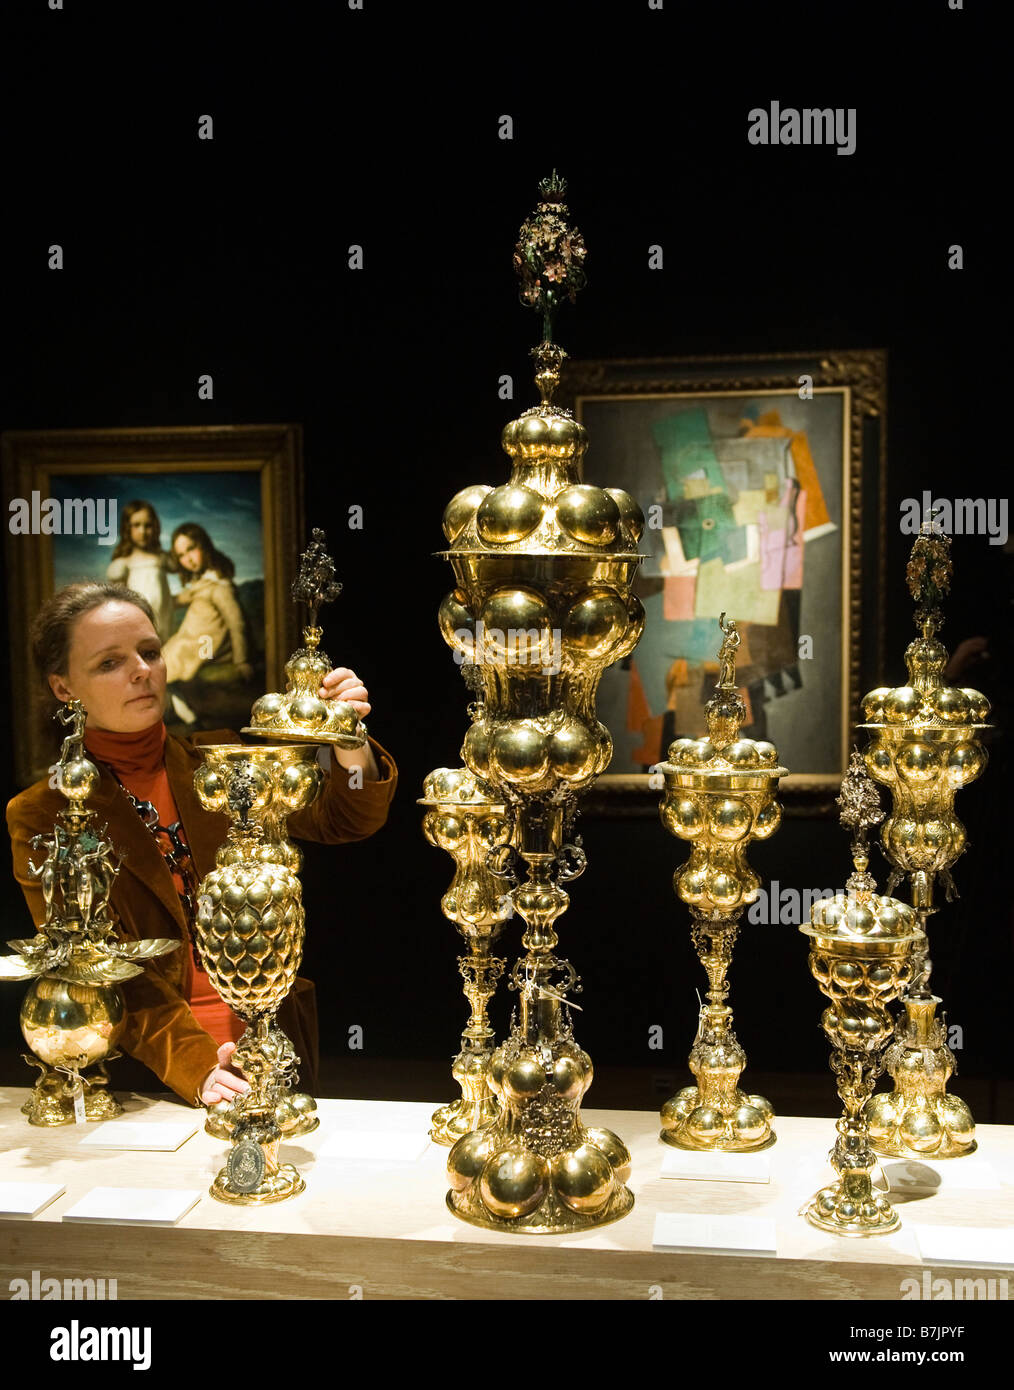 Bodendick table fountains from the  Yves Saint Laurent and Pierre Berge' Collection at Christie's London, - Stock Image